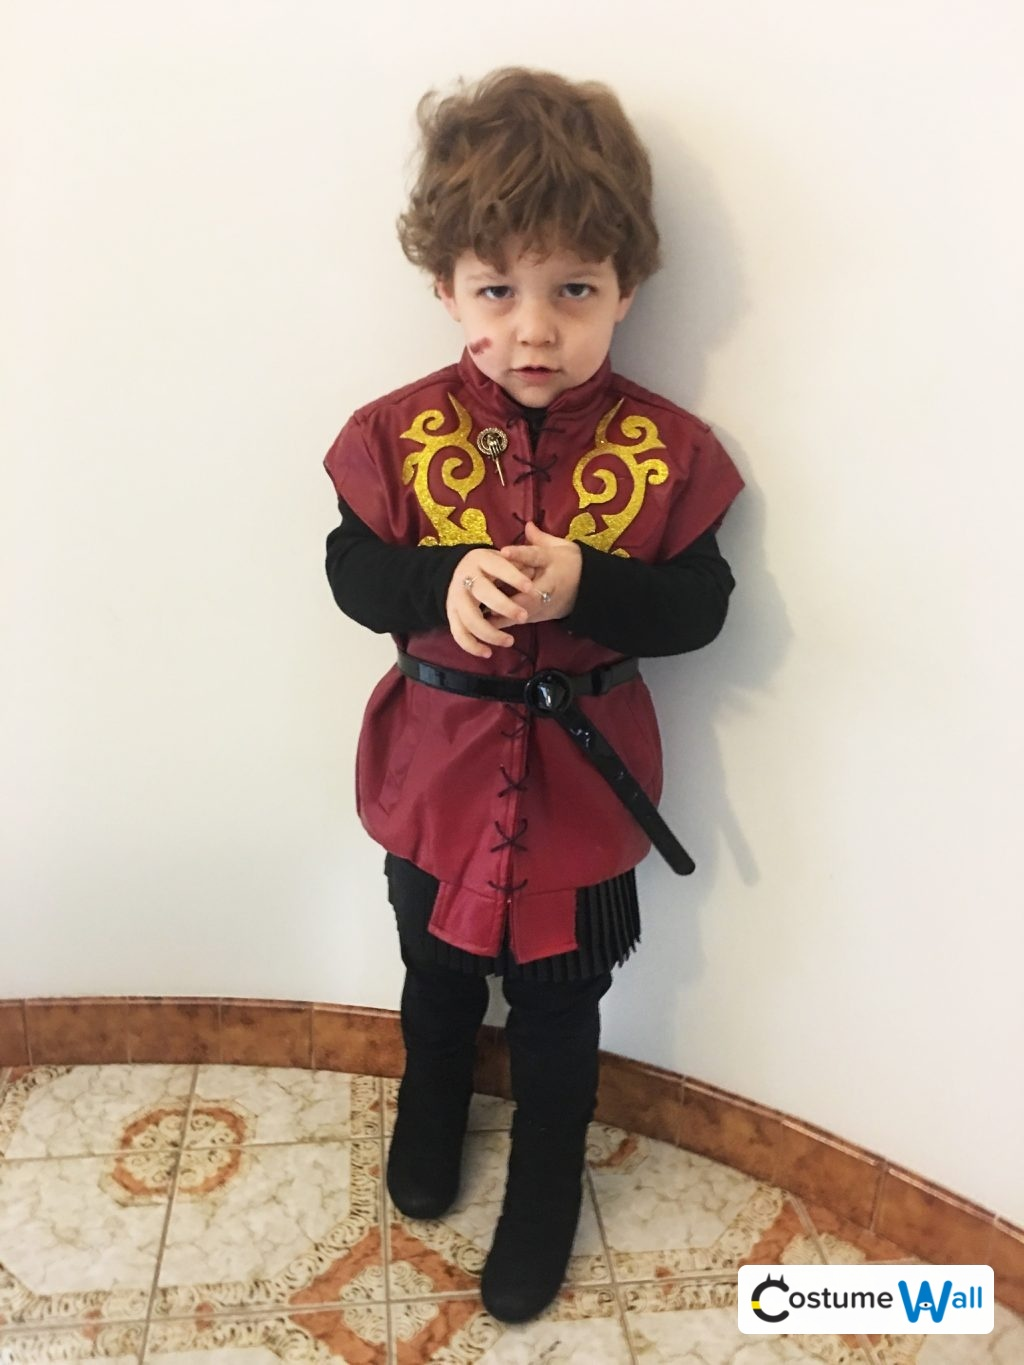 The Tiniest Tyrion Lannister from Game of Thrones